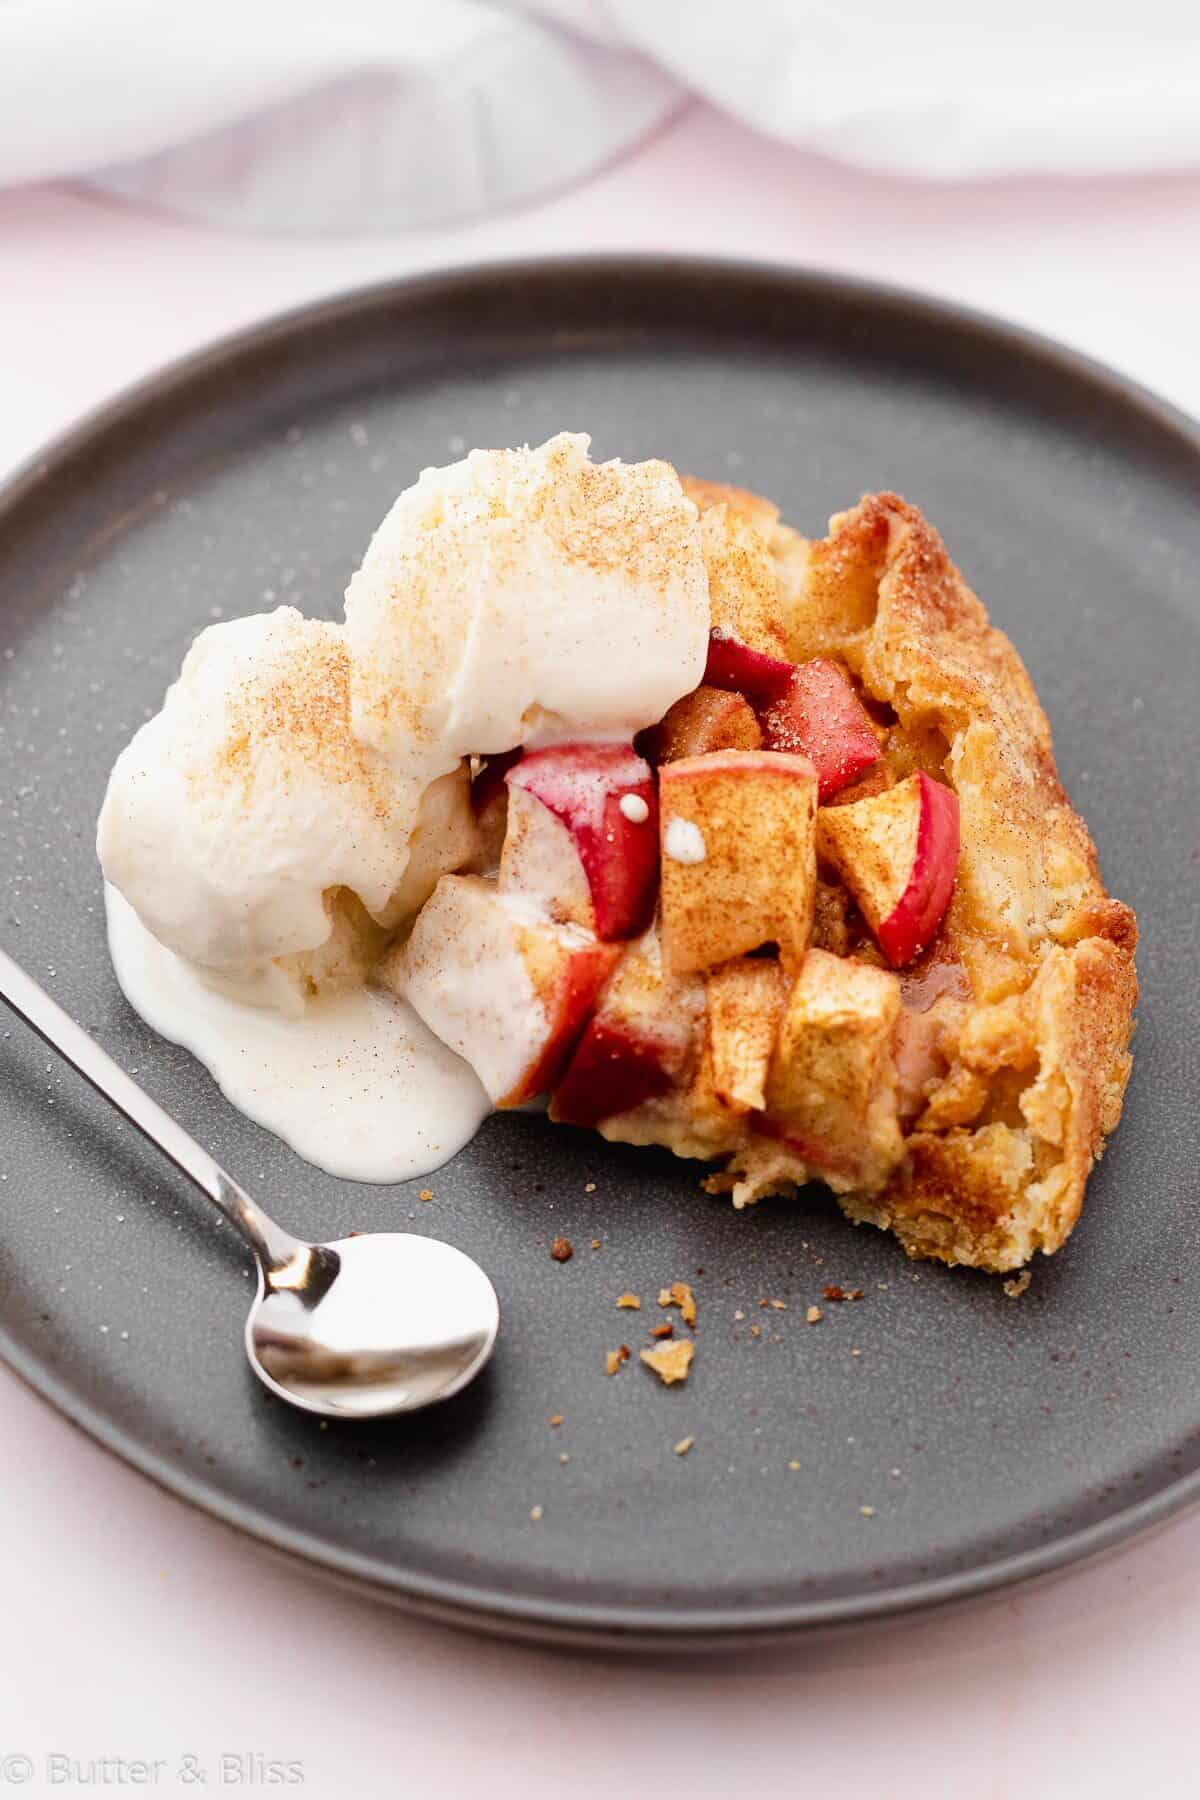 Slice of apple galette with ice cream on a plate